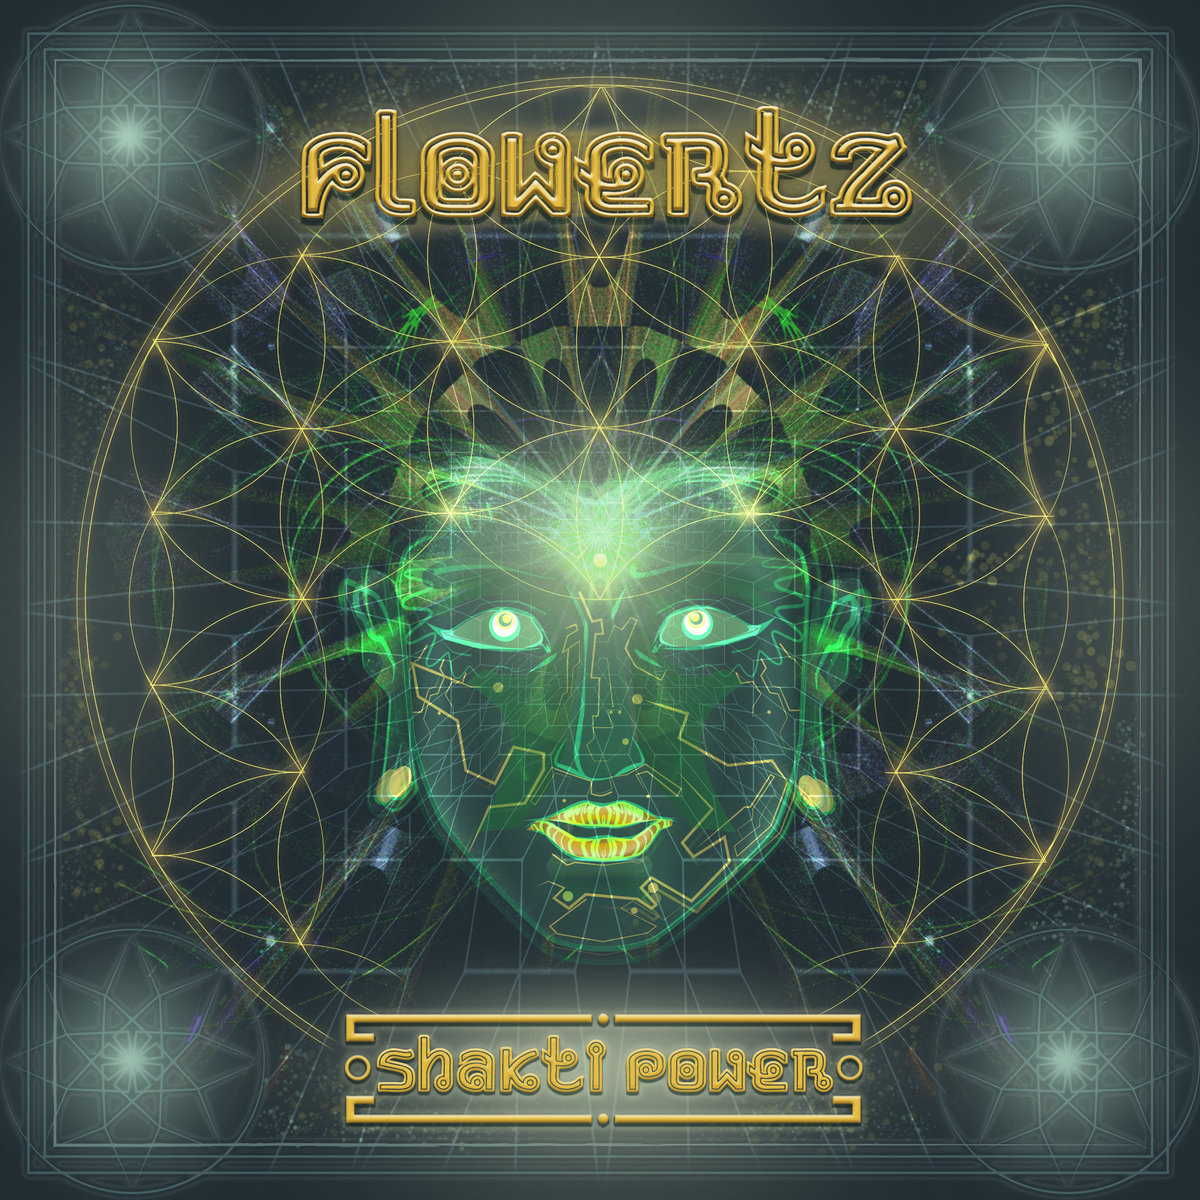 Flowertz - Shakti power